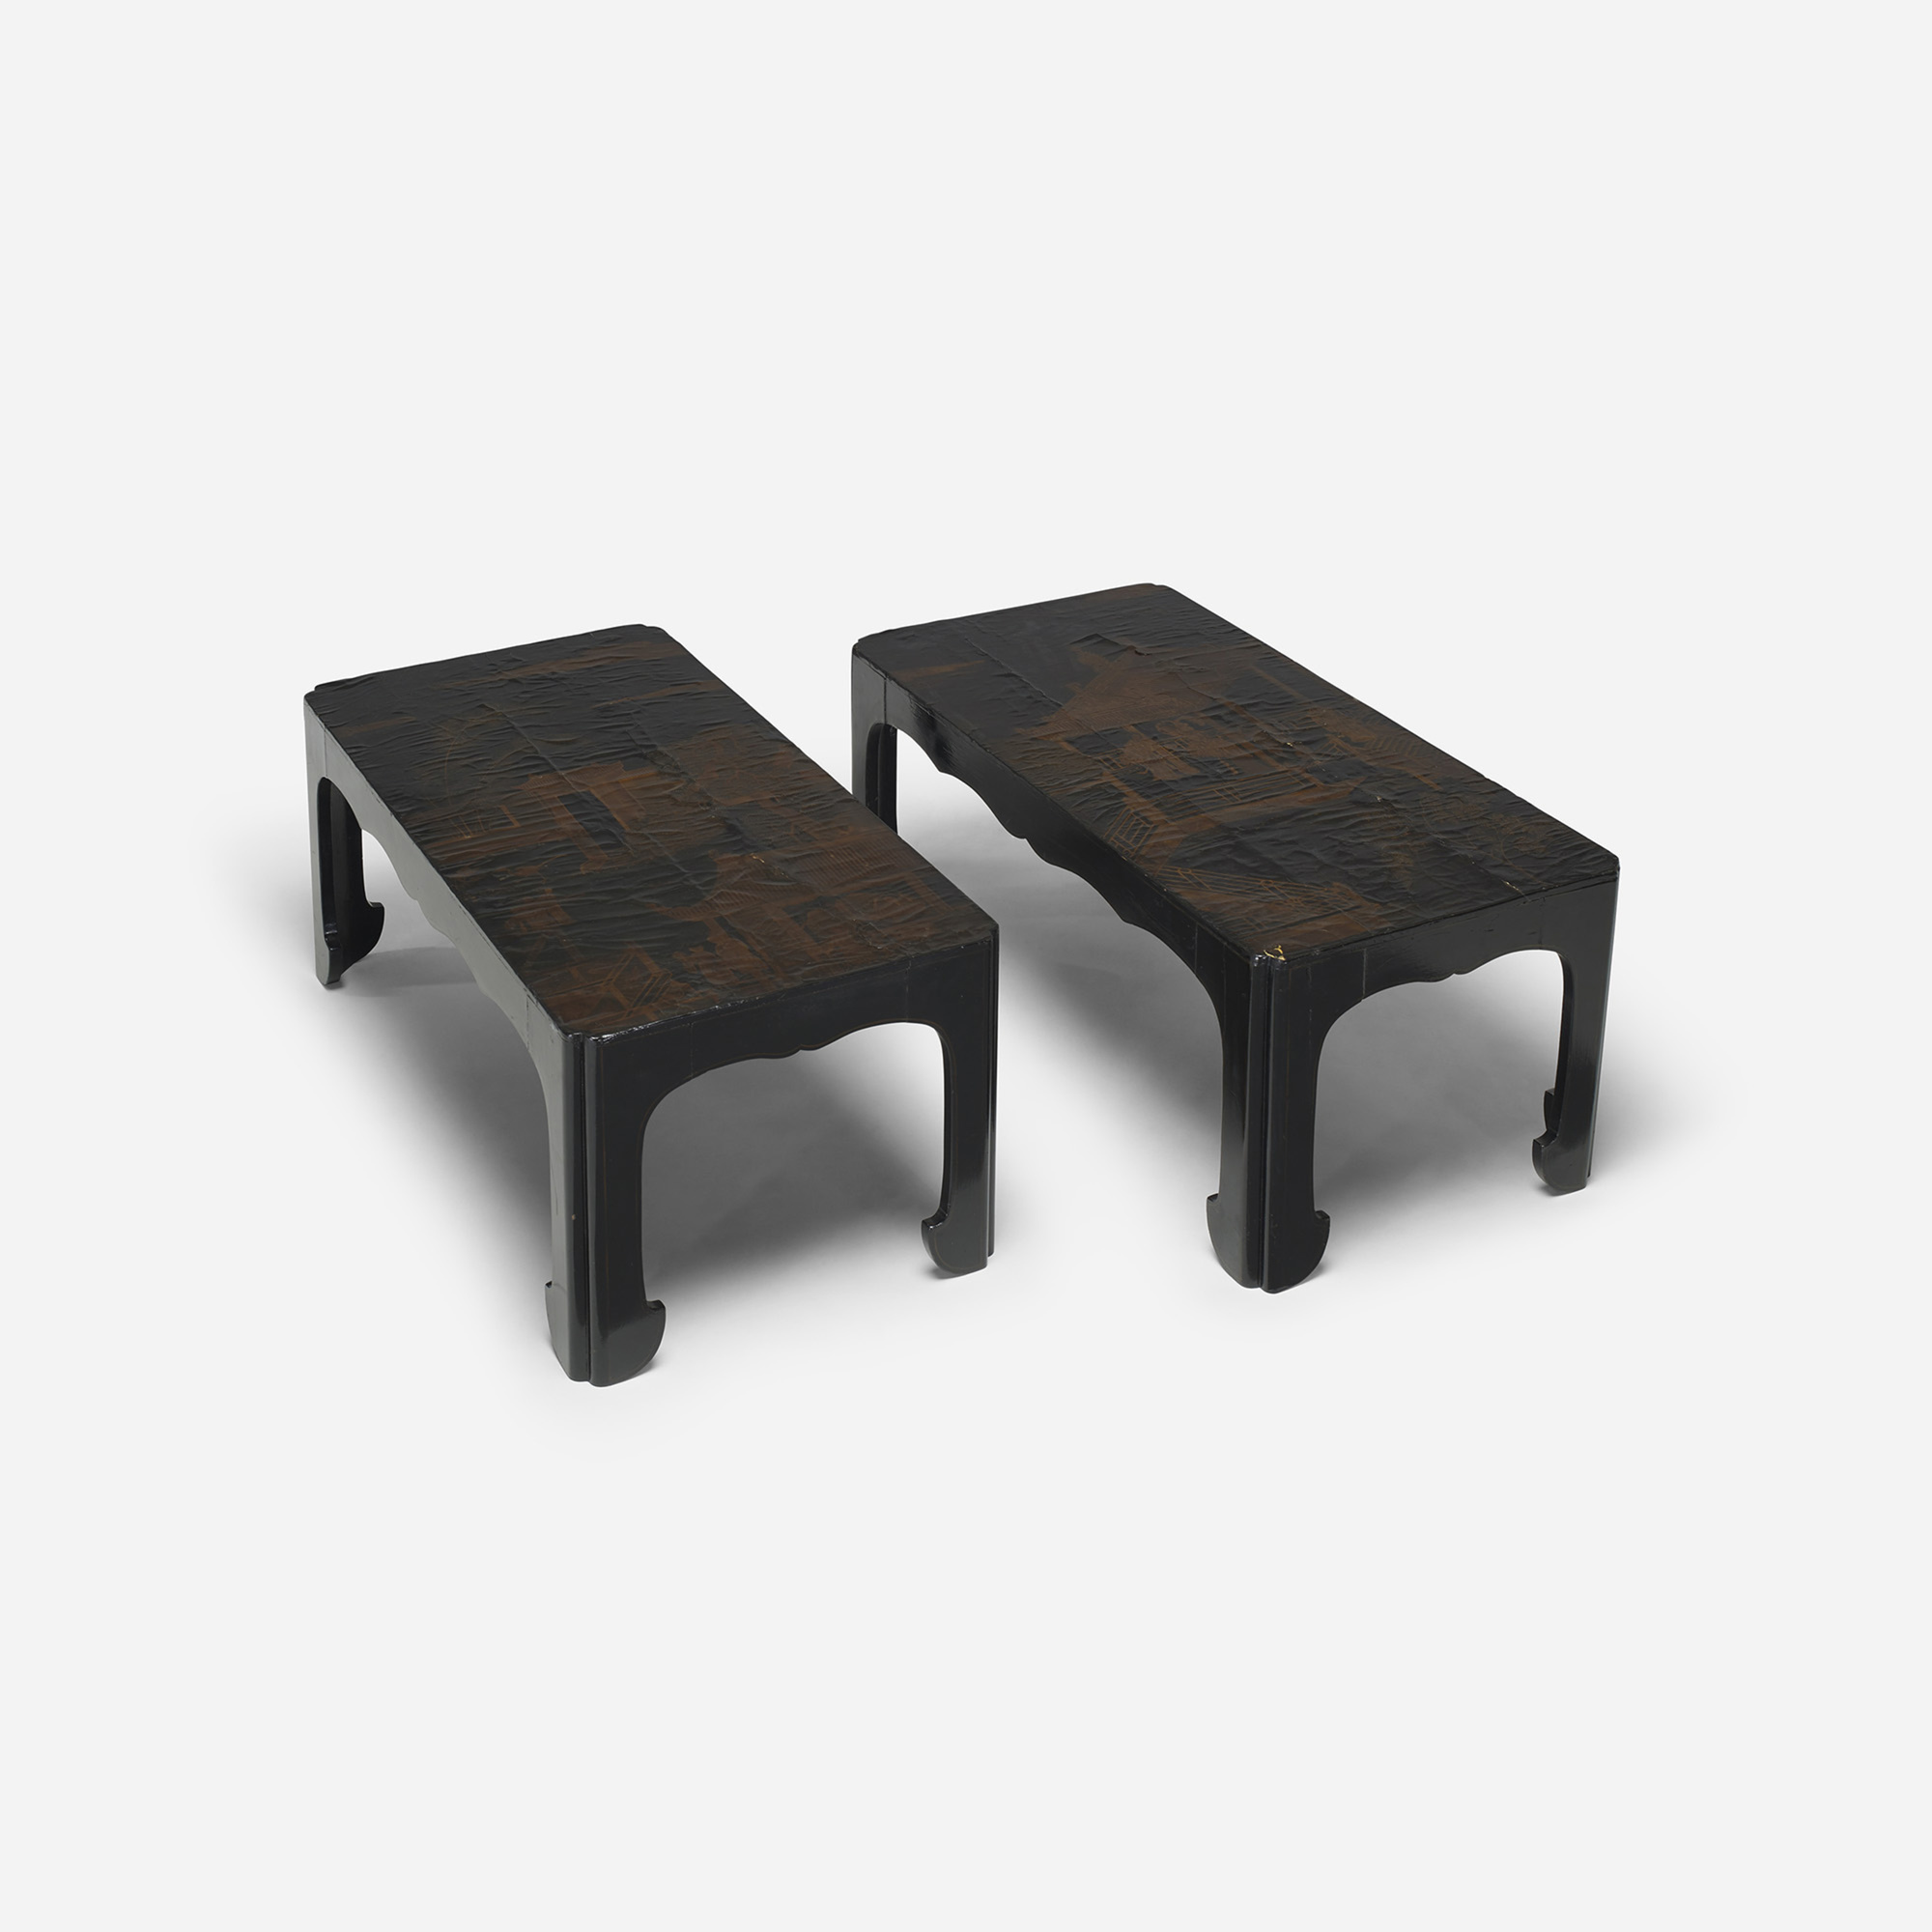 204: Chinese / occasional tables, pair (3 of 4)